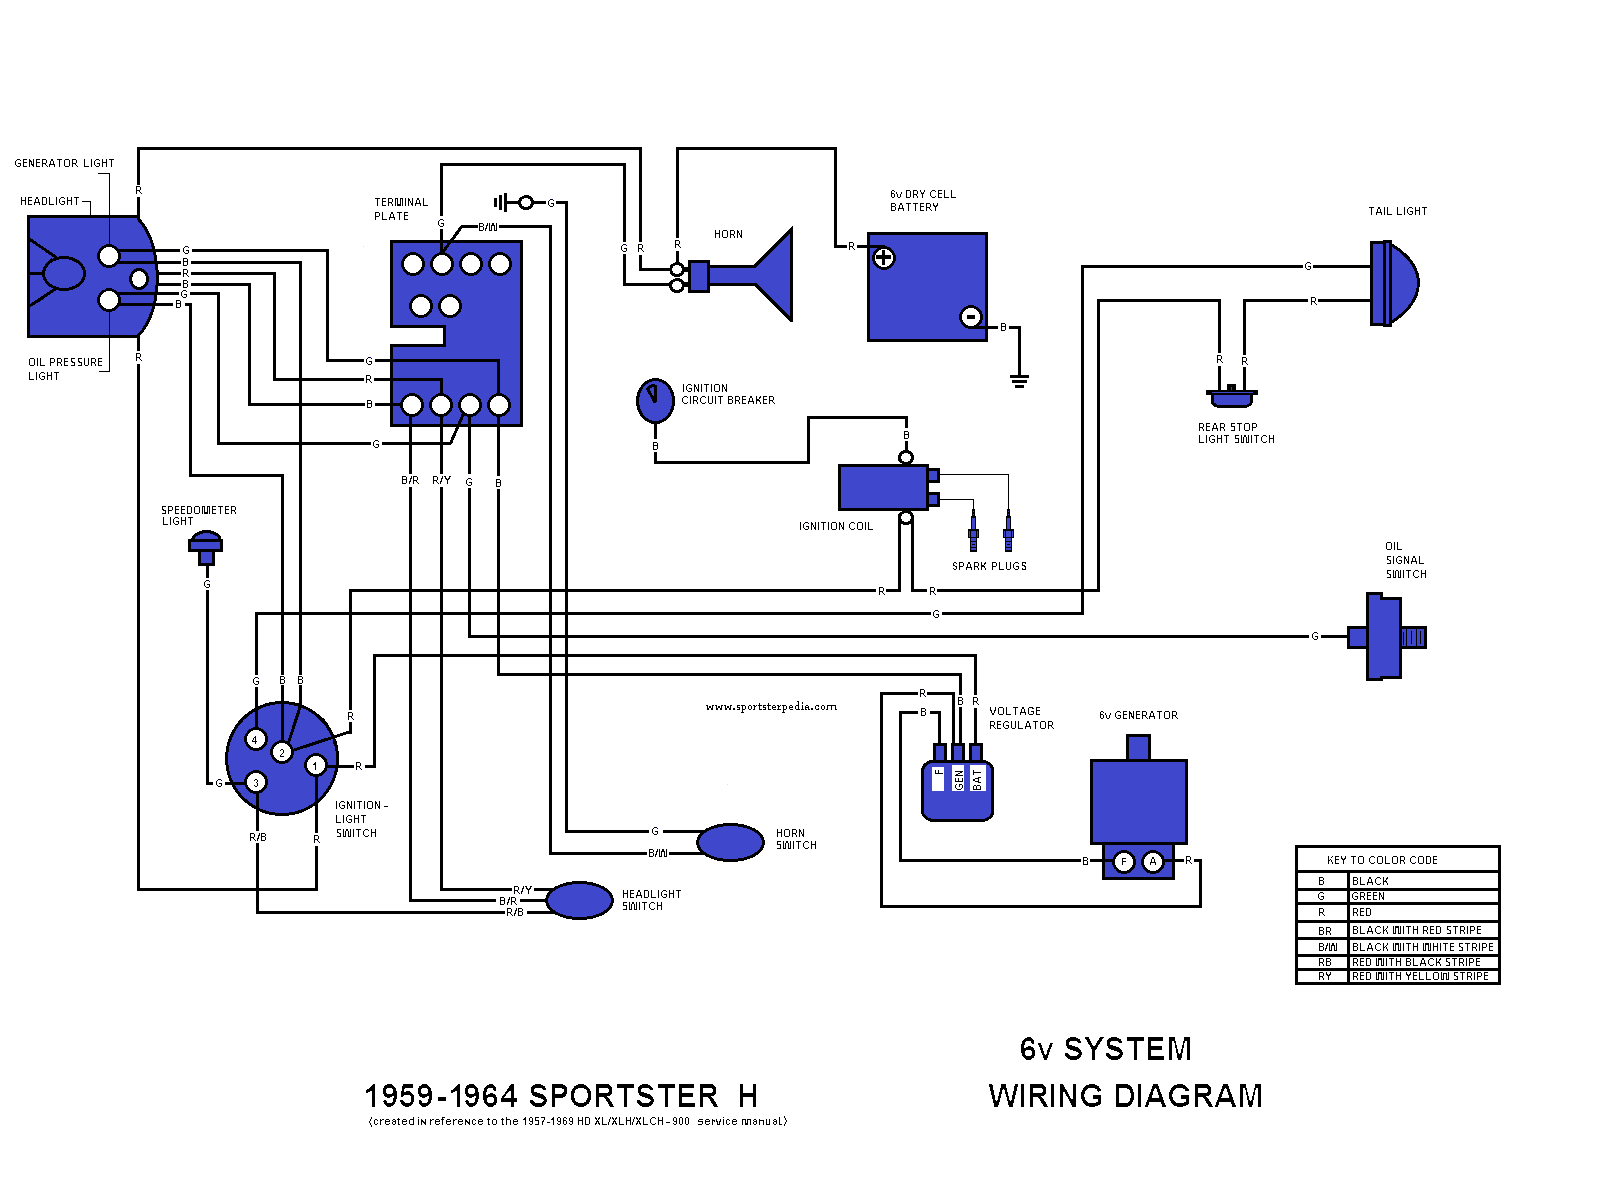 Ironhead Illustrated Wiring Diagrams - The Sportster and Buell Motorcycle  Forum - The XLFORUM®   Sportster Wiring Diagram With Generator      XL Forum